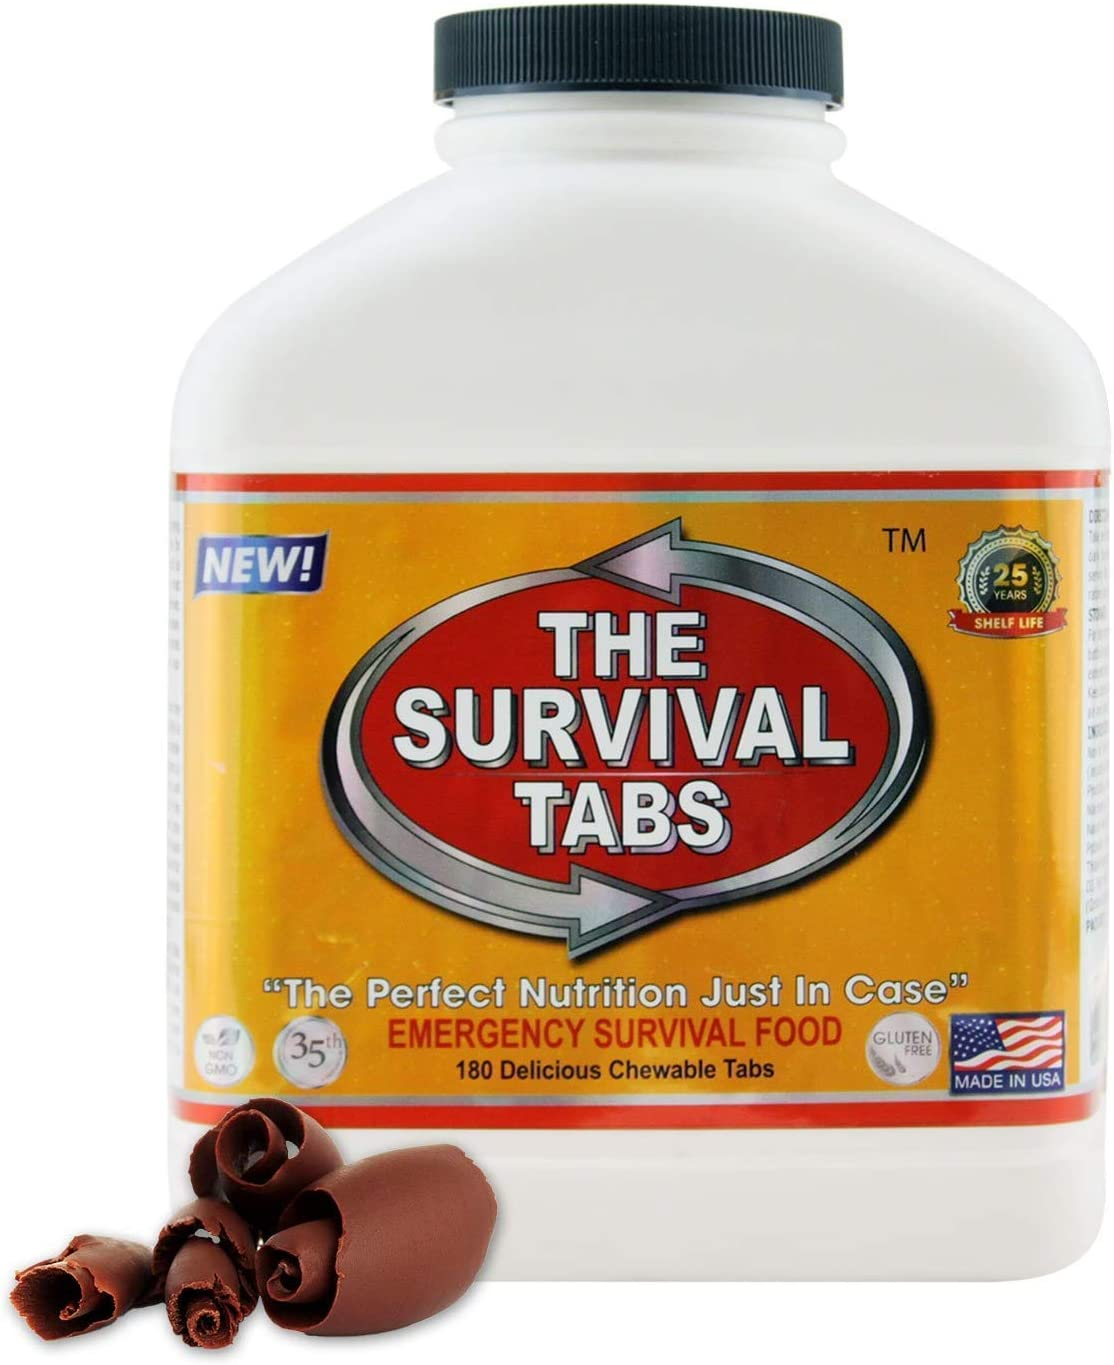 Survival Tabs - 15 day Survival Food Supply - Gluten Free and Non-GMO 25 Years Shelf Life (180 tabs - Chocolate)